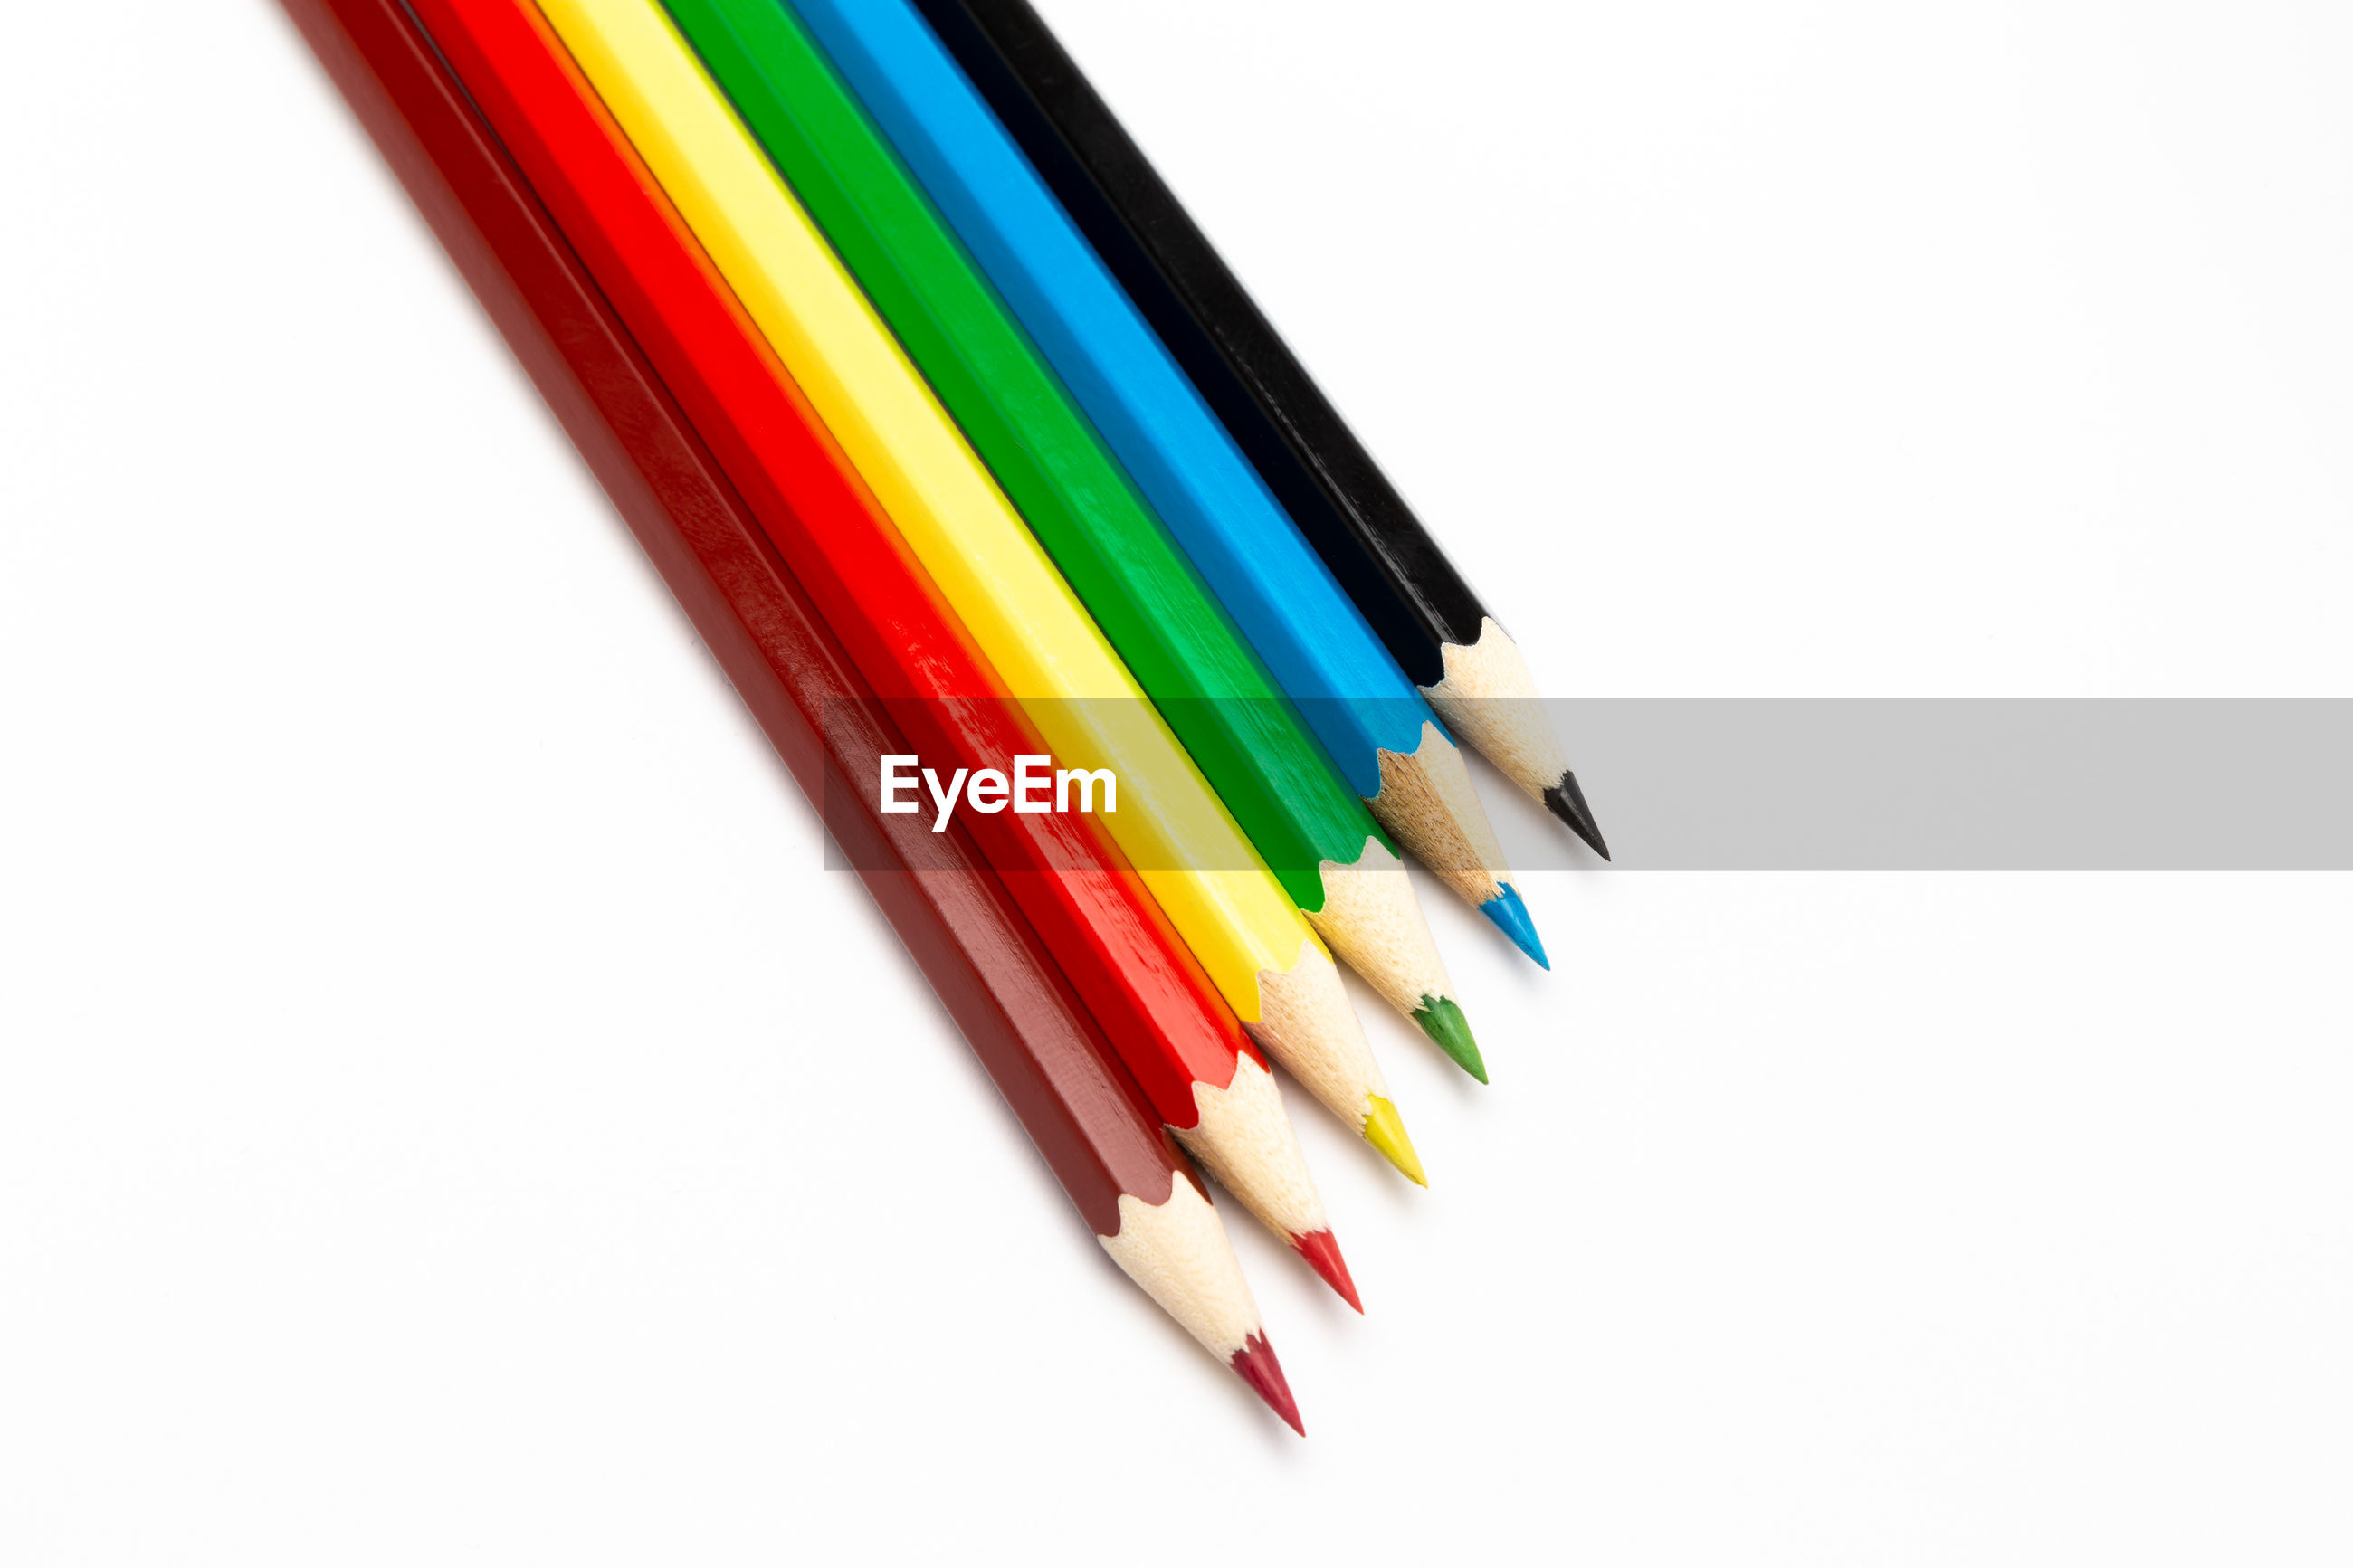 MULTI COLORED PENCILS ON WHITE BACKGROUND